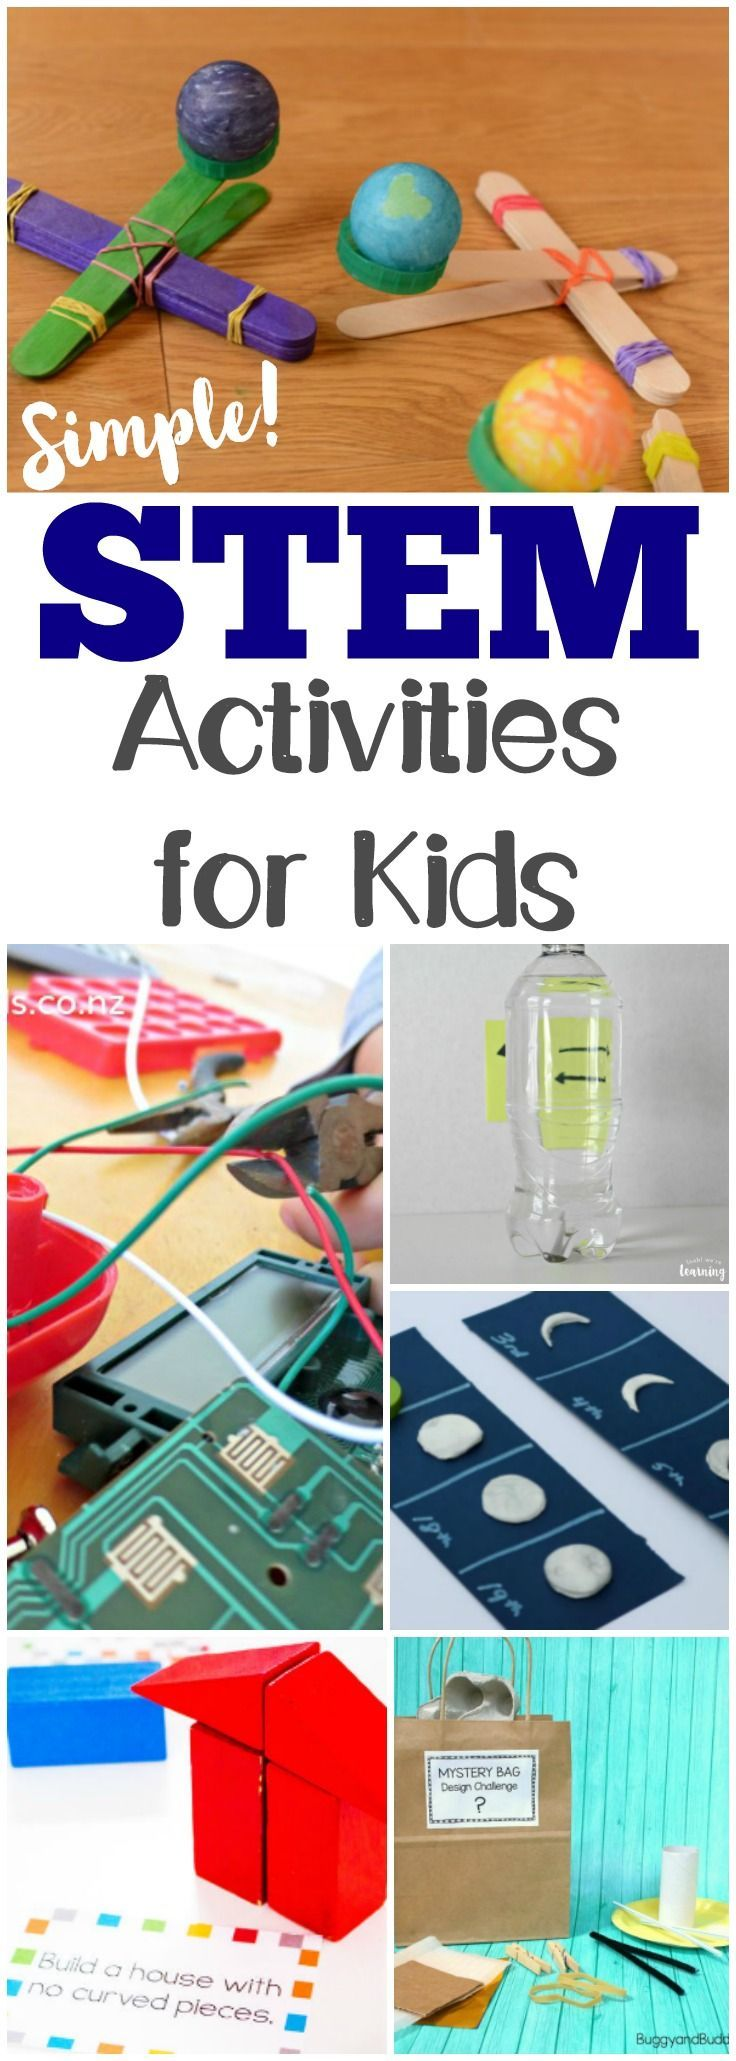 45 Easy STEM Activities for Kids – Growing a Jeweled Rose (play recipes, kids crafts, science, slime, & more)